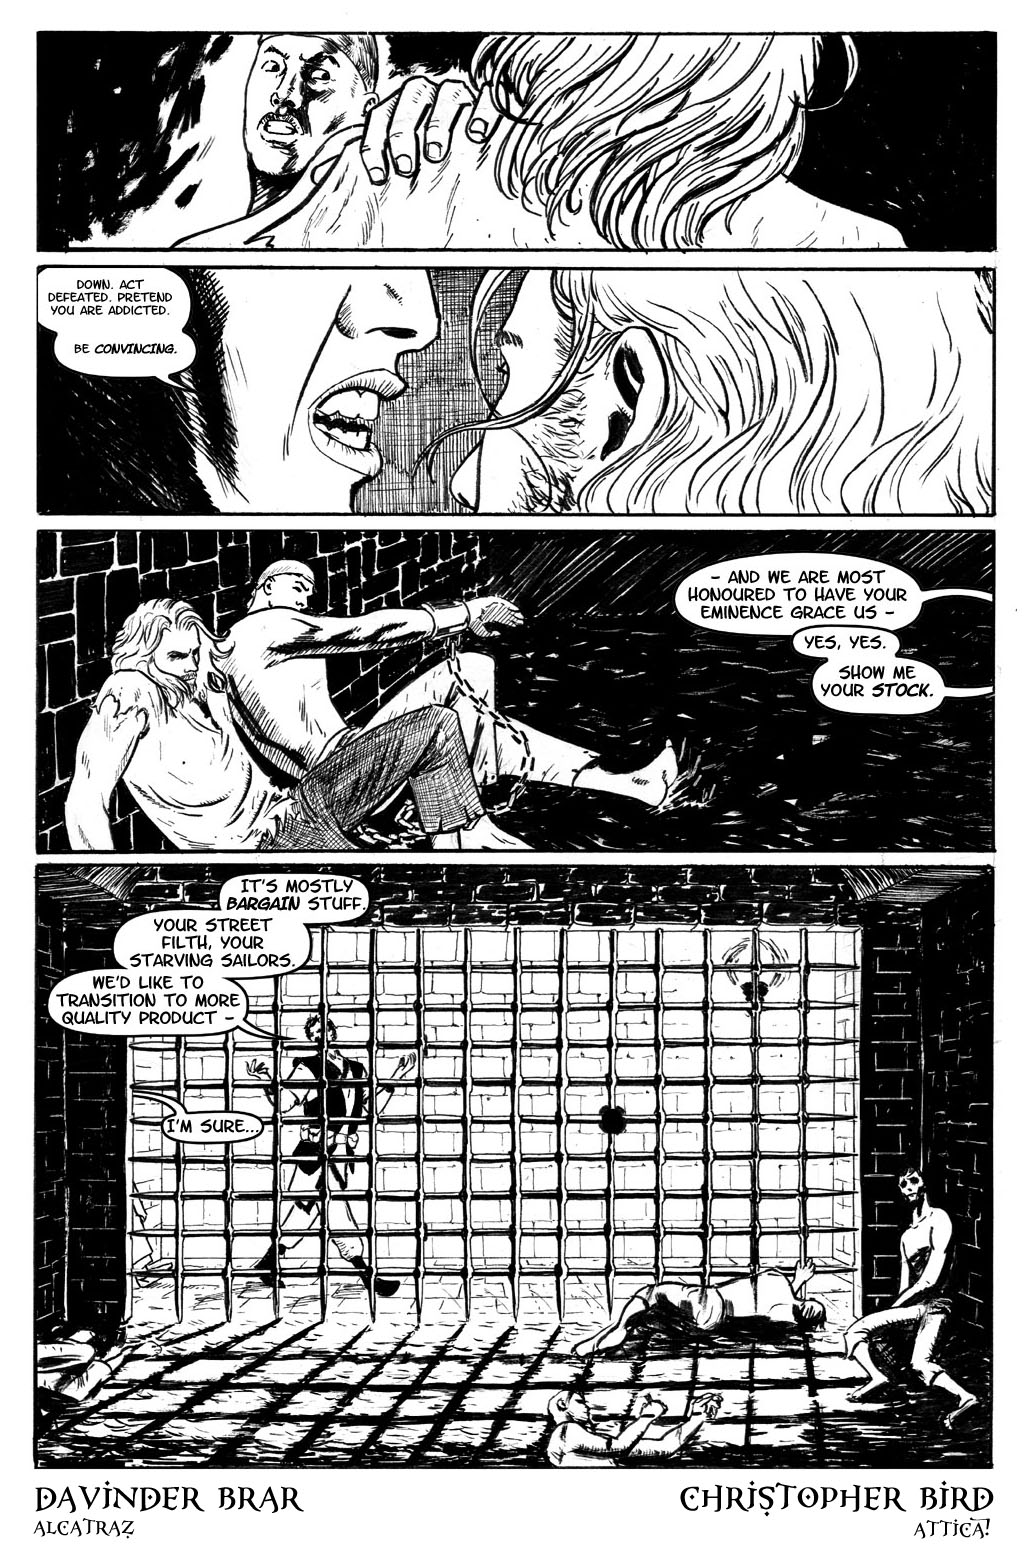 Book 2, page 10